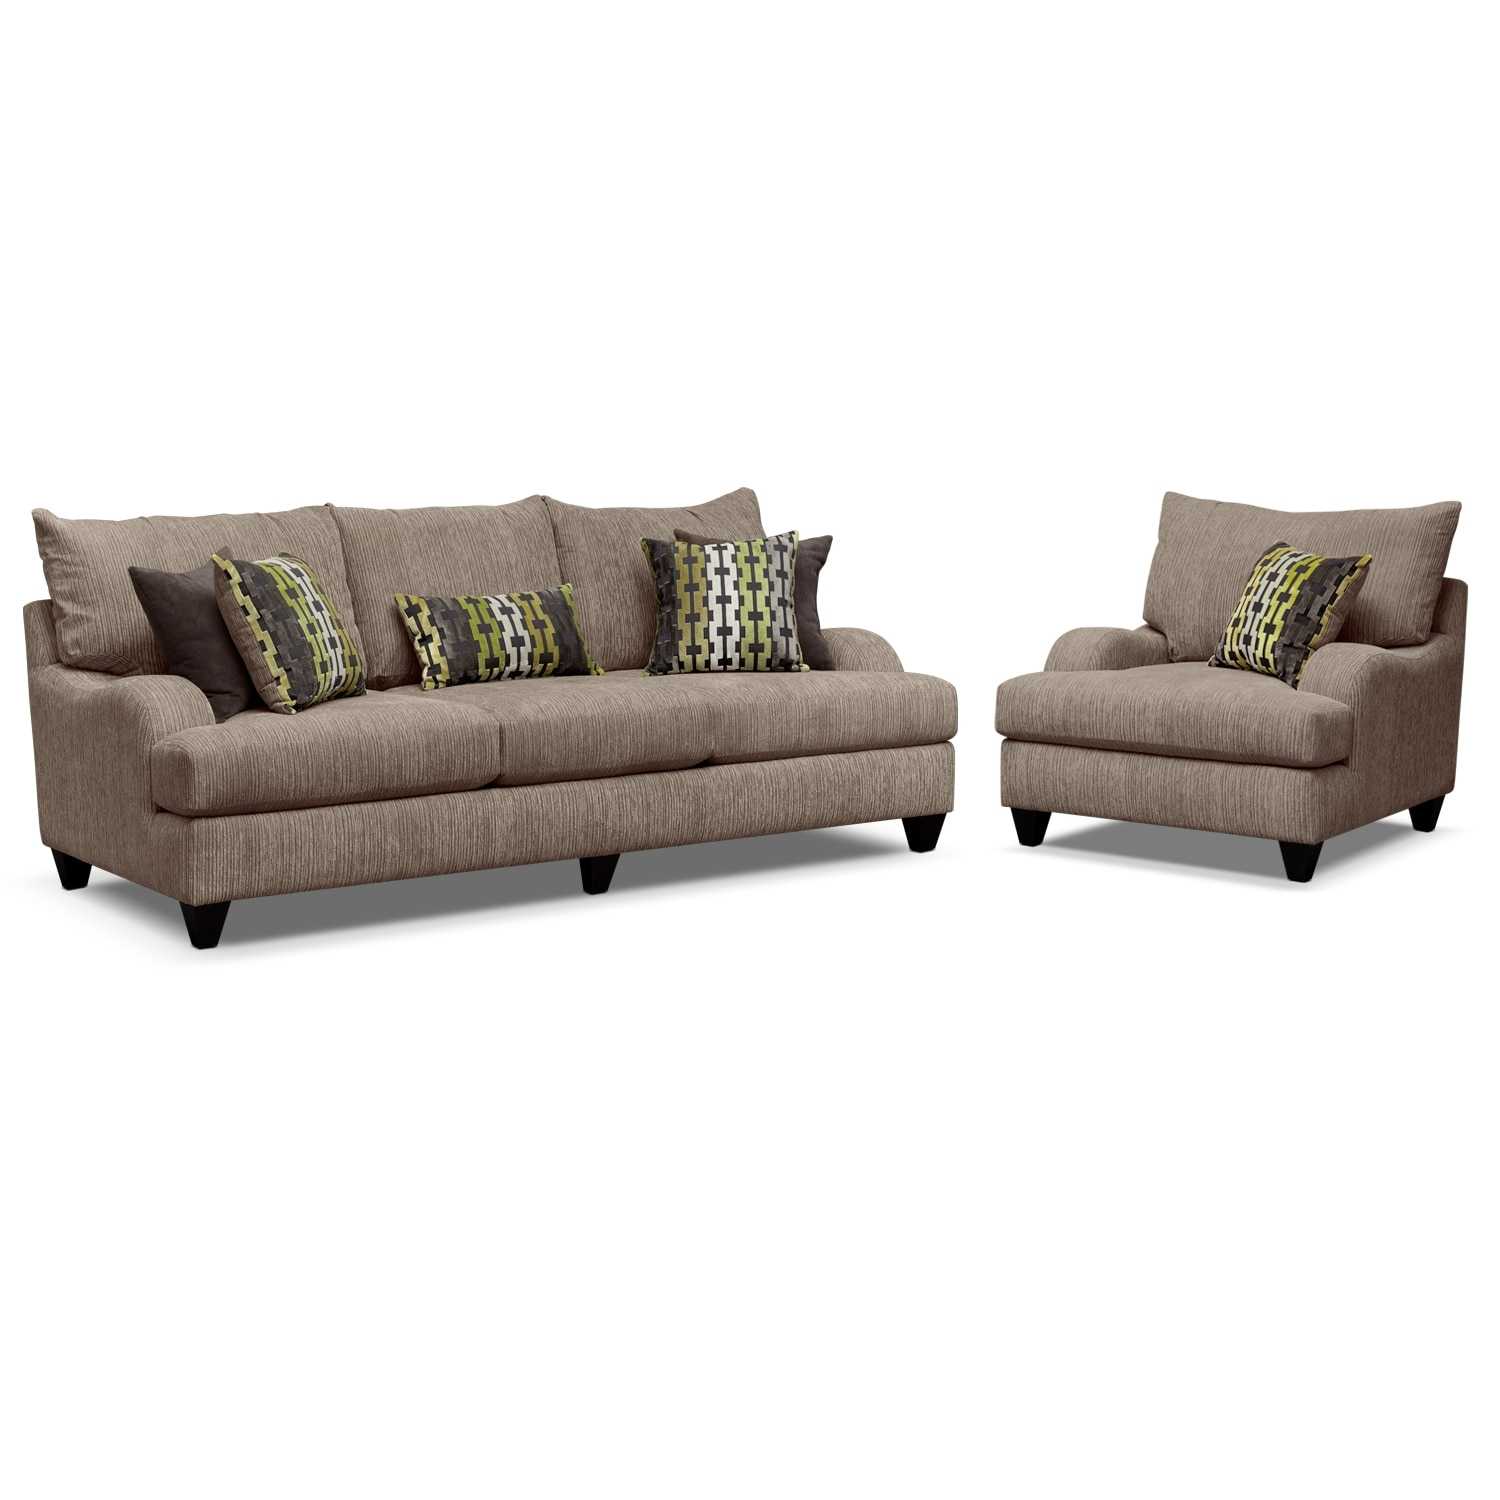 Santa monica 2 pc living room wchair value city furniture